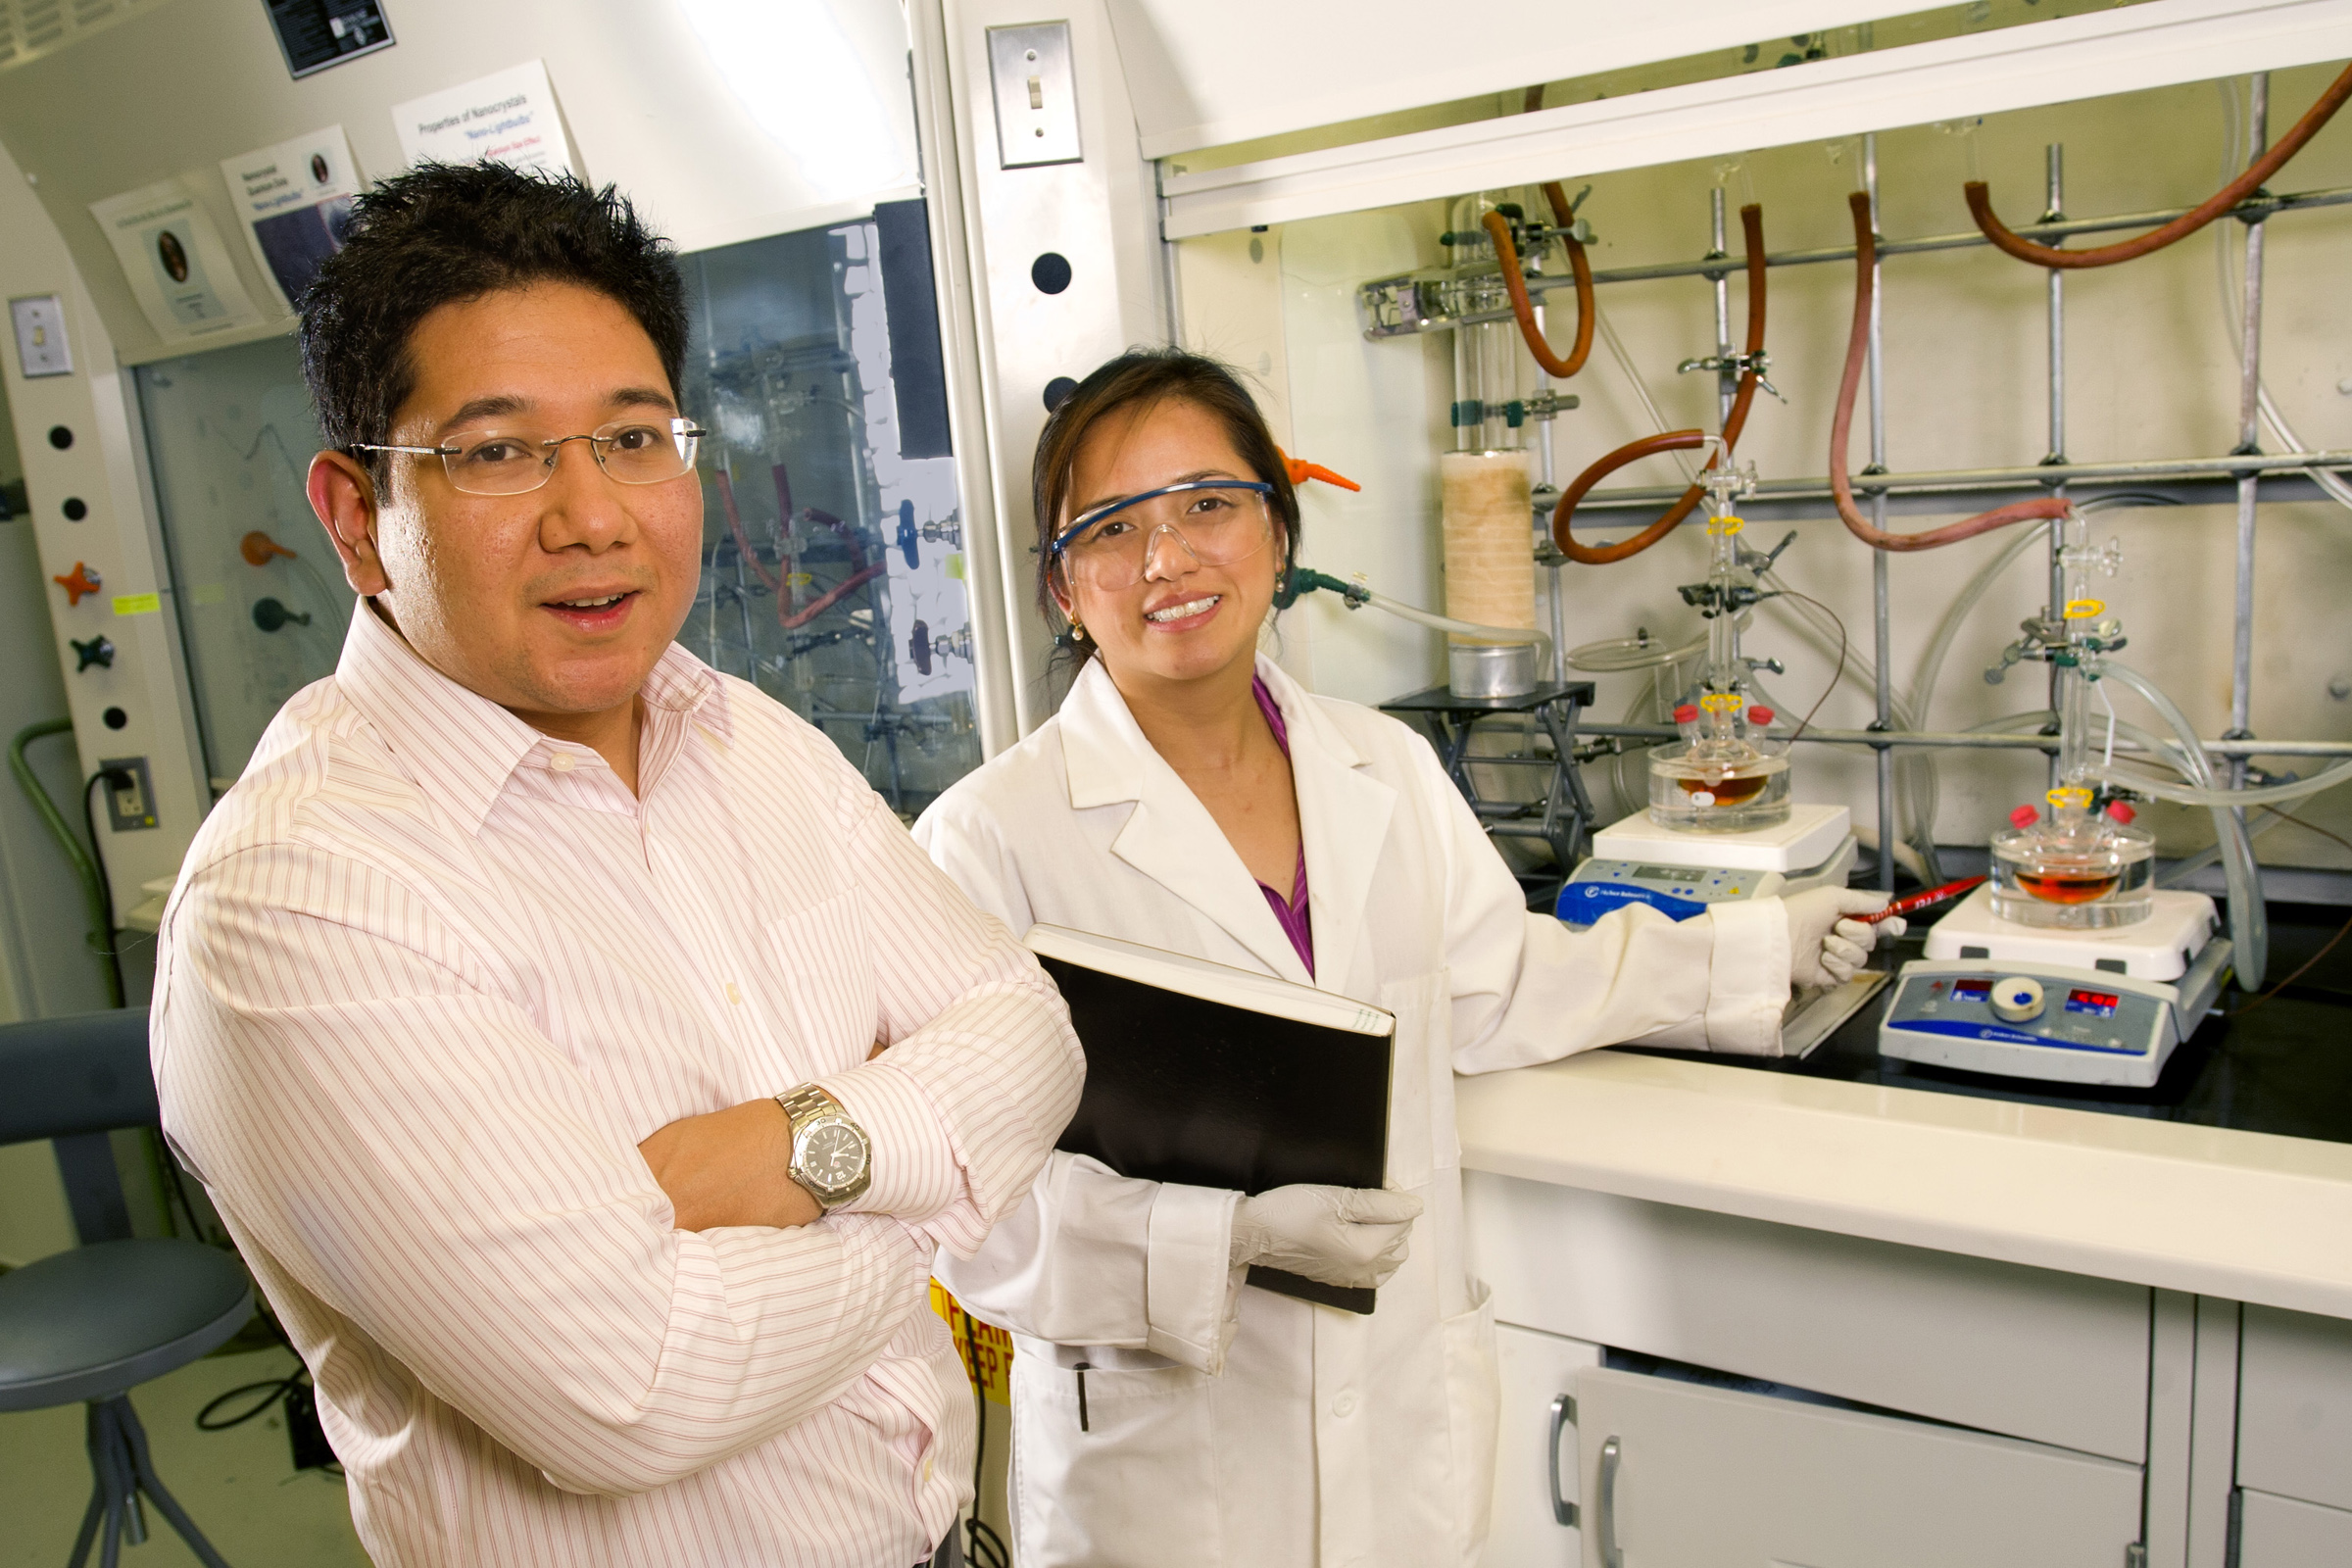 Navillum was co-founded by Jacqueline Siy-Ronquillo, a postdoctoral fellow in the Department of Chemistry, and Nikko Ronquillo, M.D./Ph.D. student.